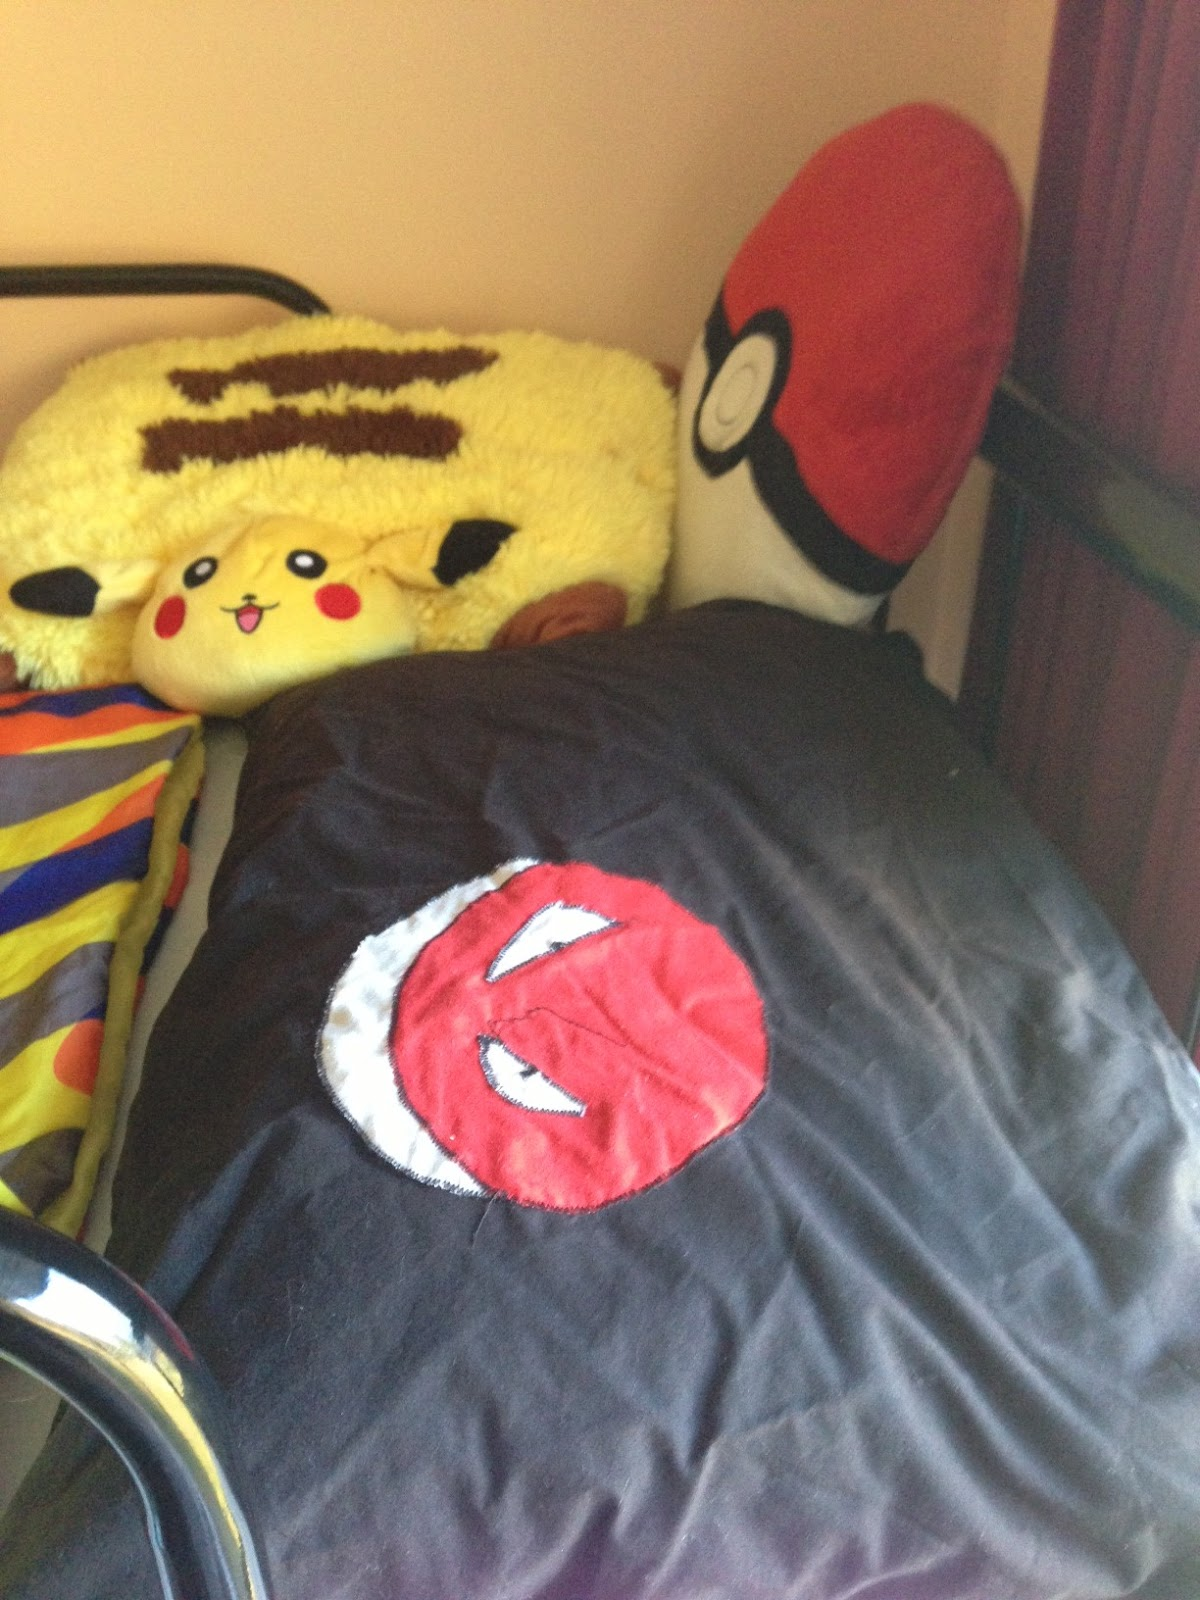 Simple  bed plus his entire plush Pokemon collection There is just enough room for him in his Pokemon sleeping bag with his Voltorb pillow thanks to his